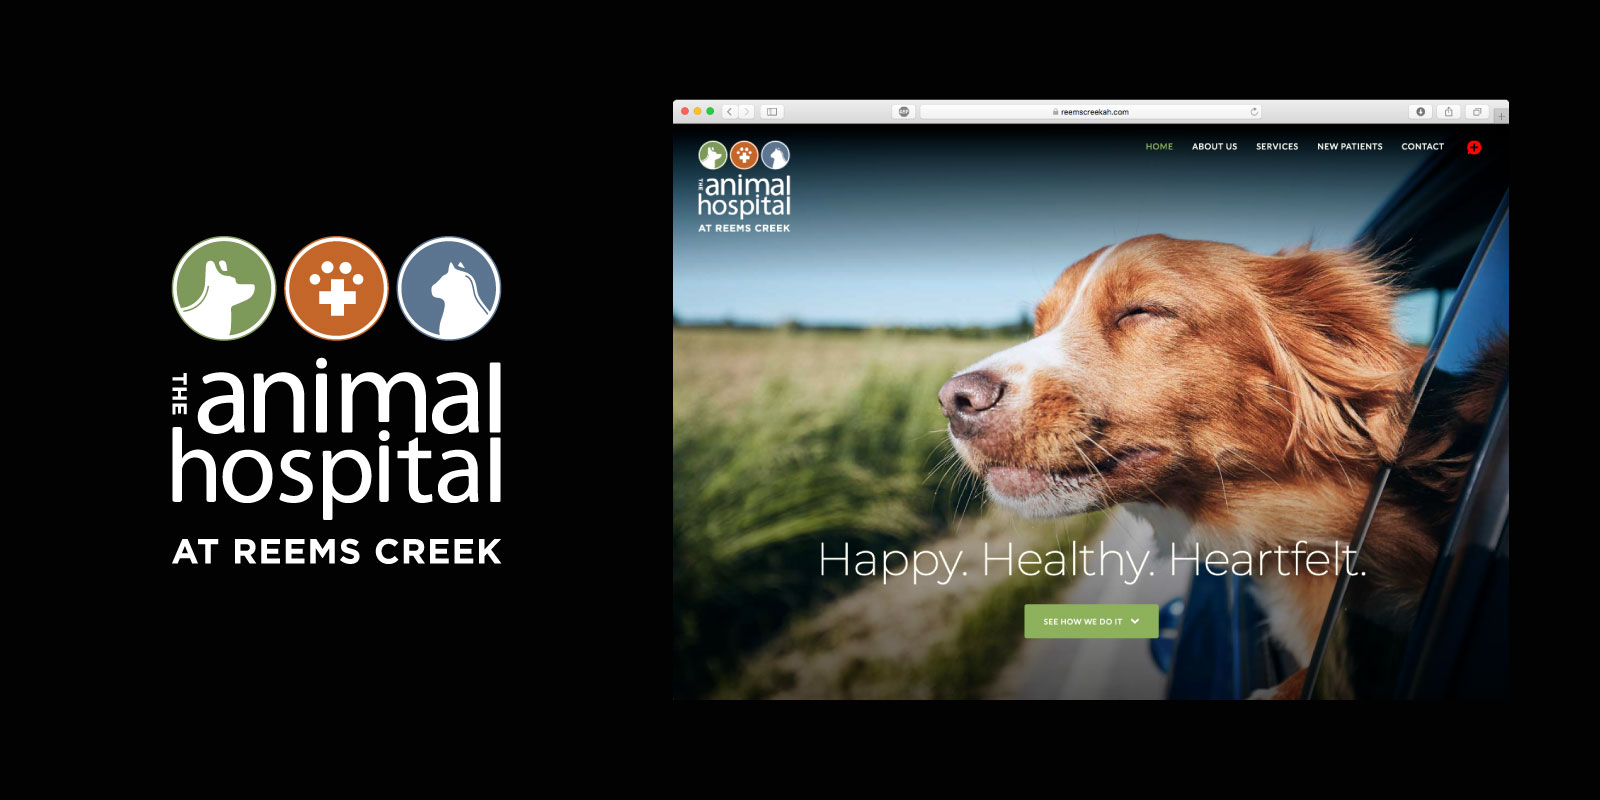 The Animal Hospital at Reems Creek logo and website screen grab on black background